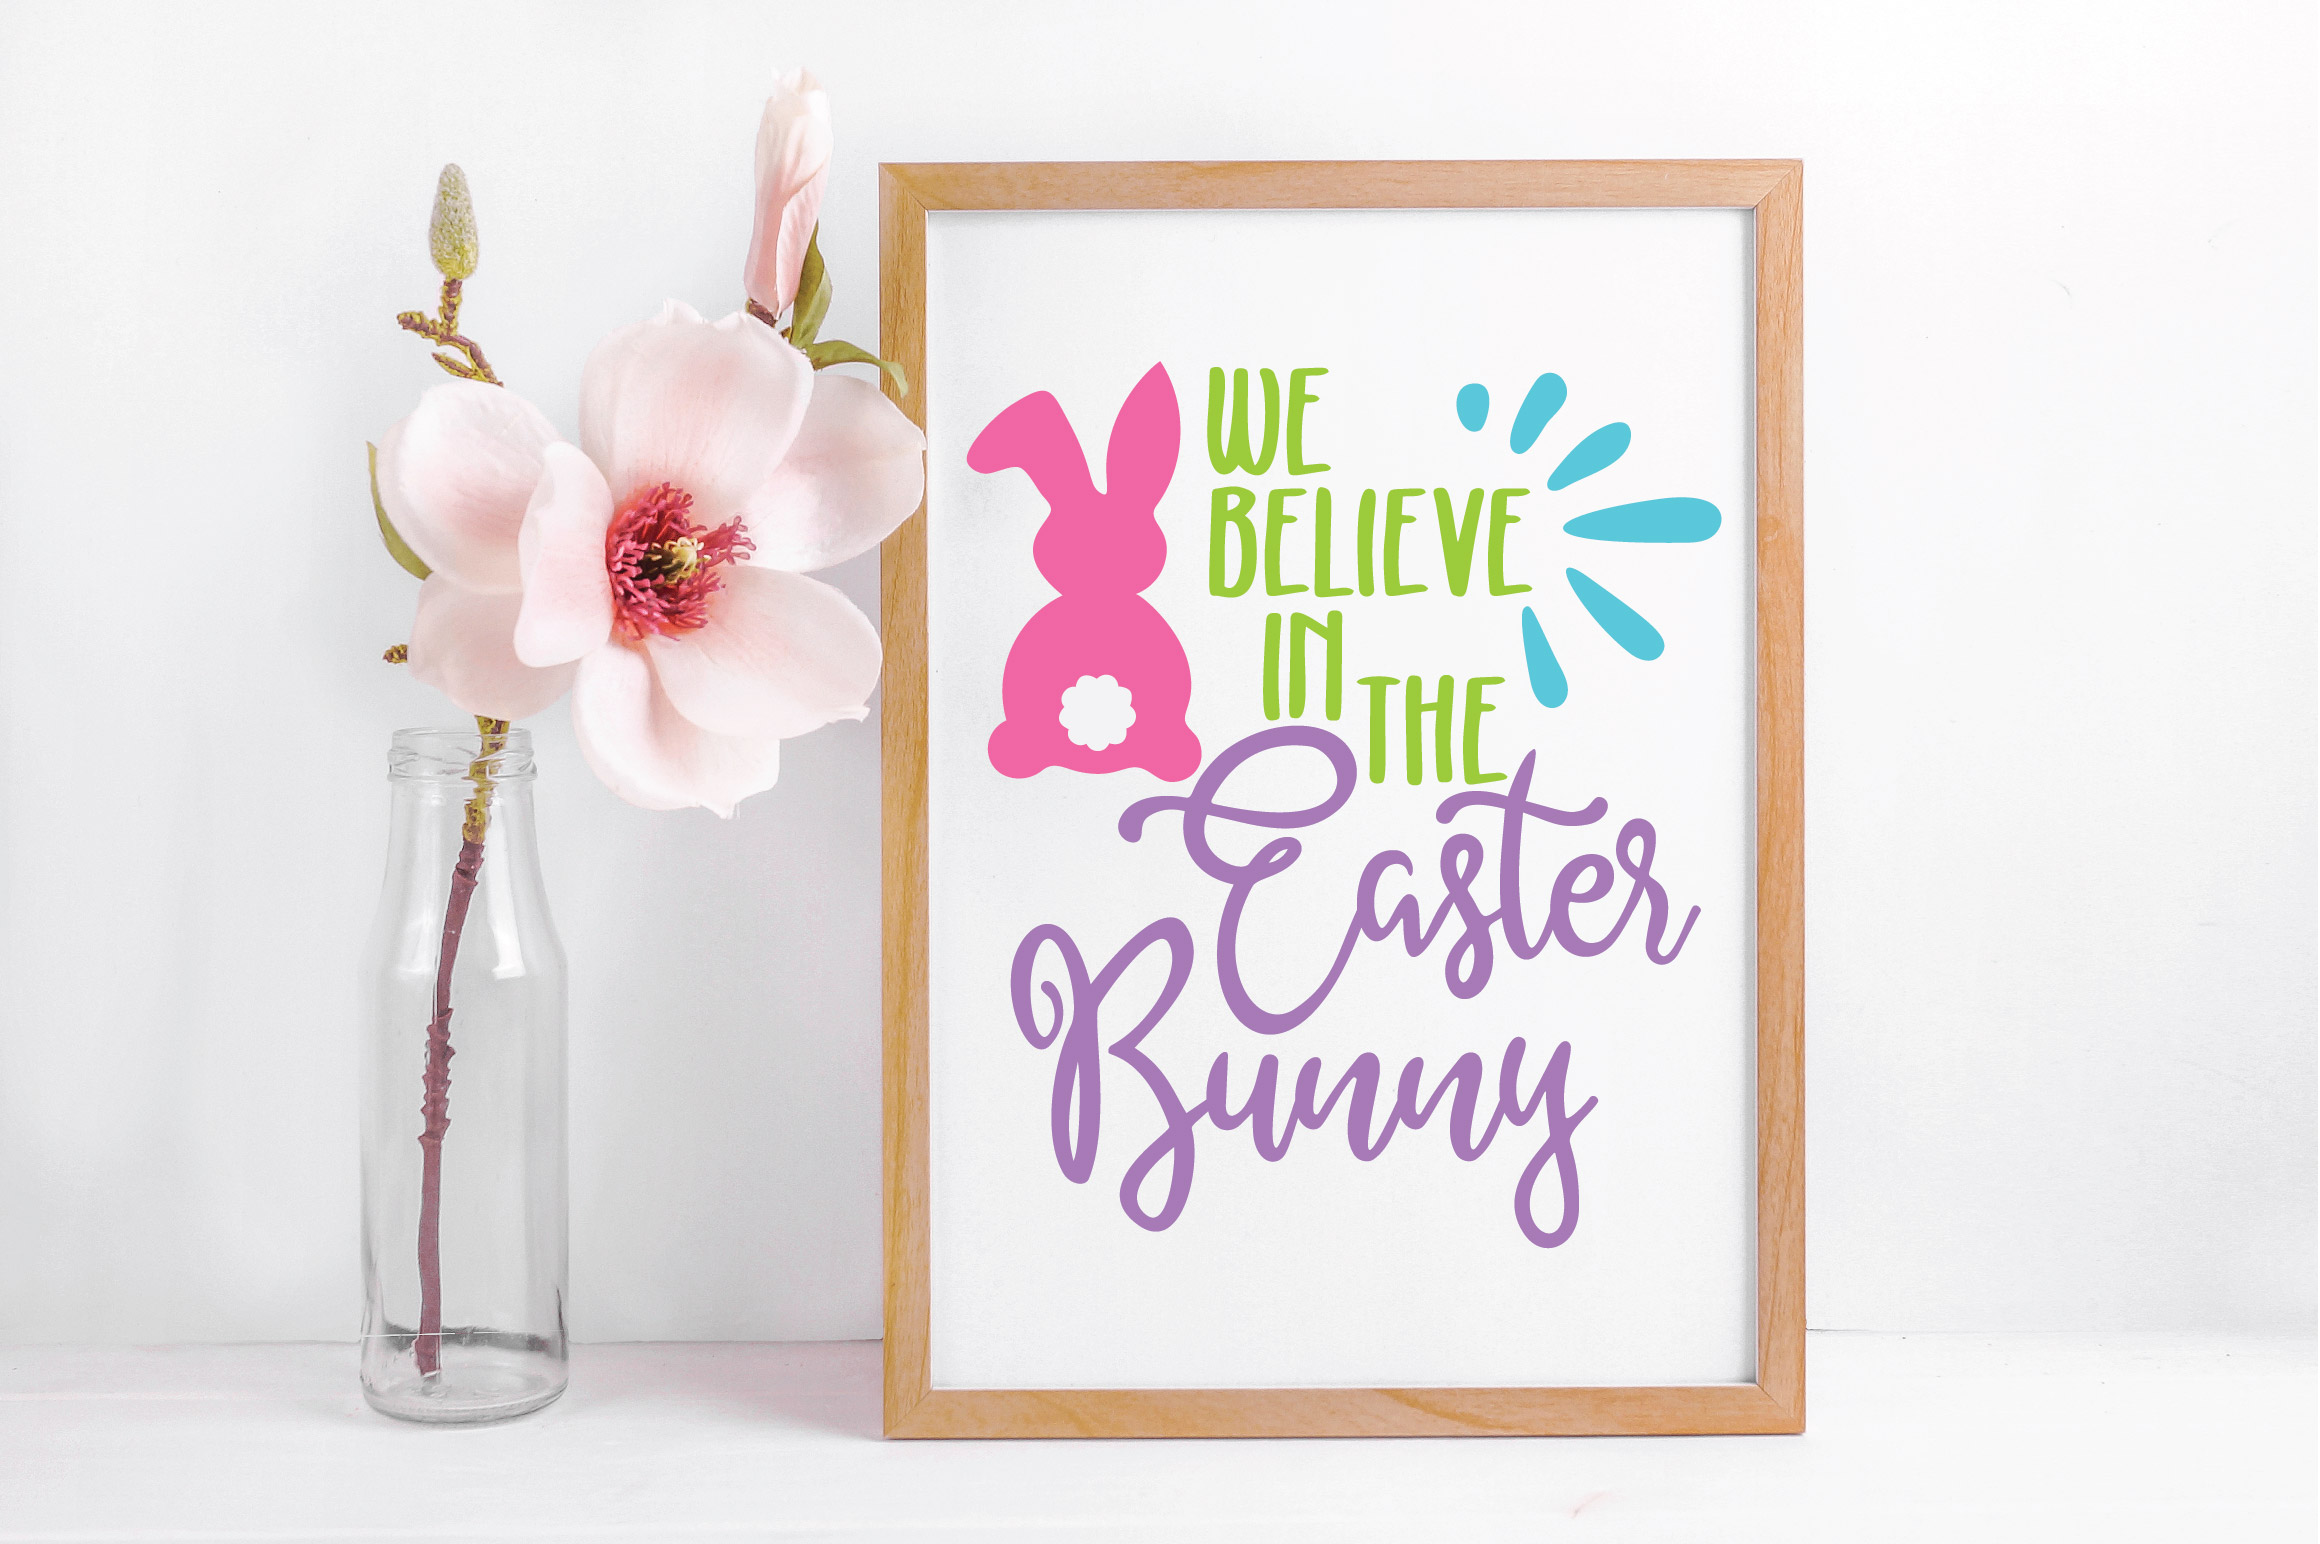 Easter SVG Bundle with 25 SVG Cut Files DXF EPS PNG AI JPG example image 3